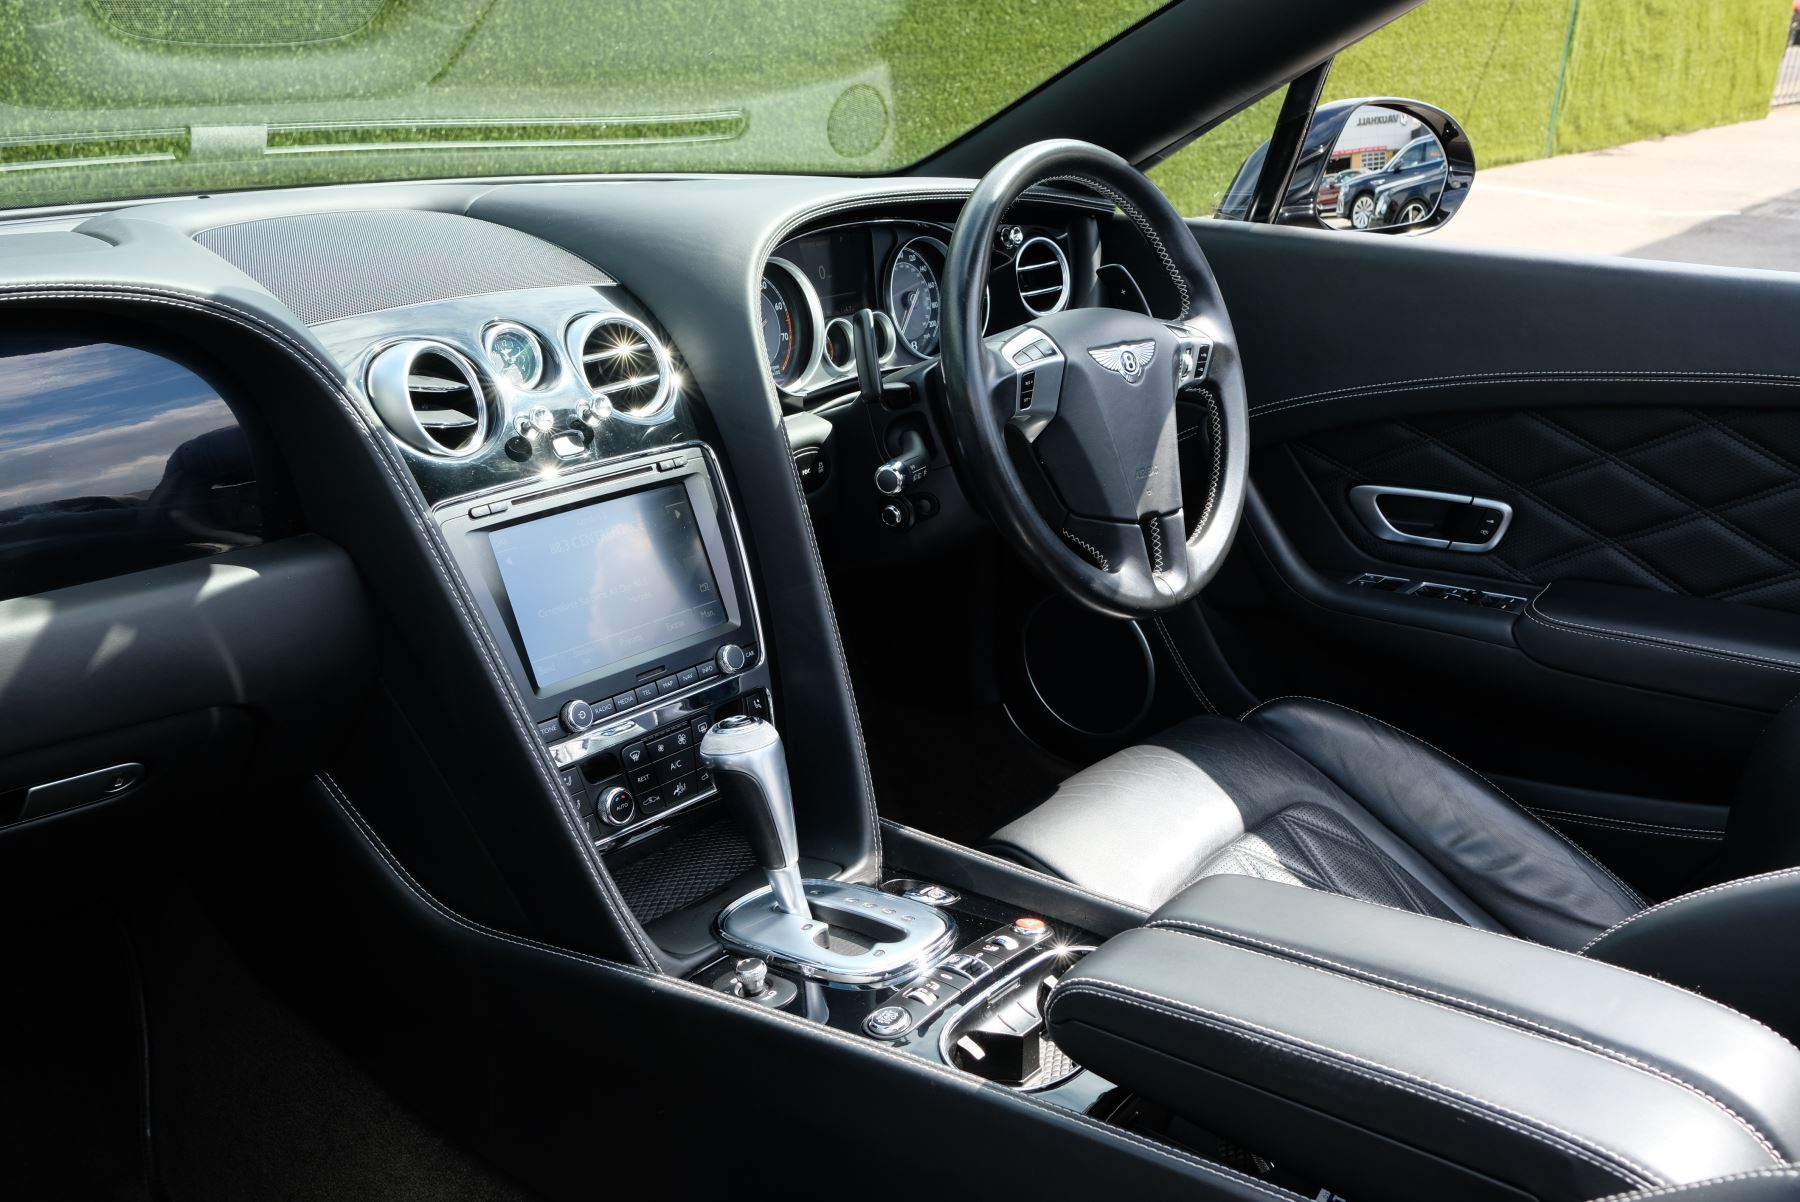 Bentley Continental GTC 4.0 V8 2dr image 14